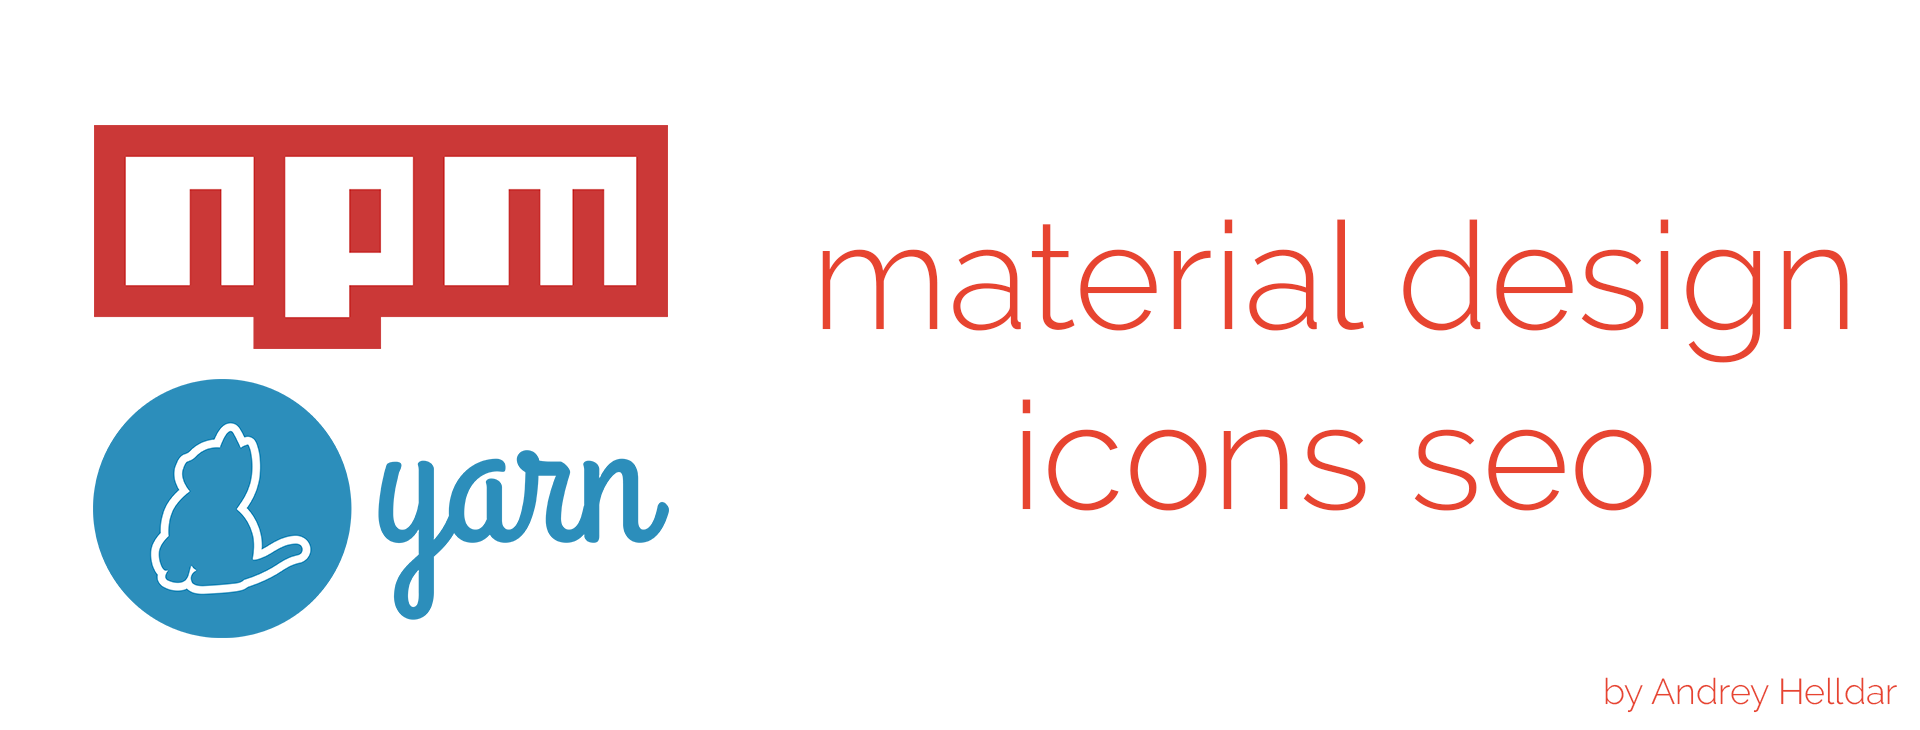 material-design-icons-seo